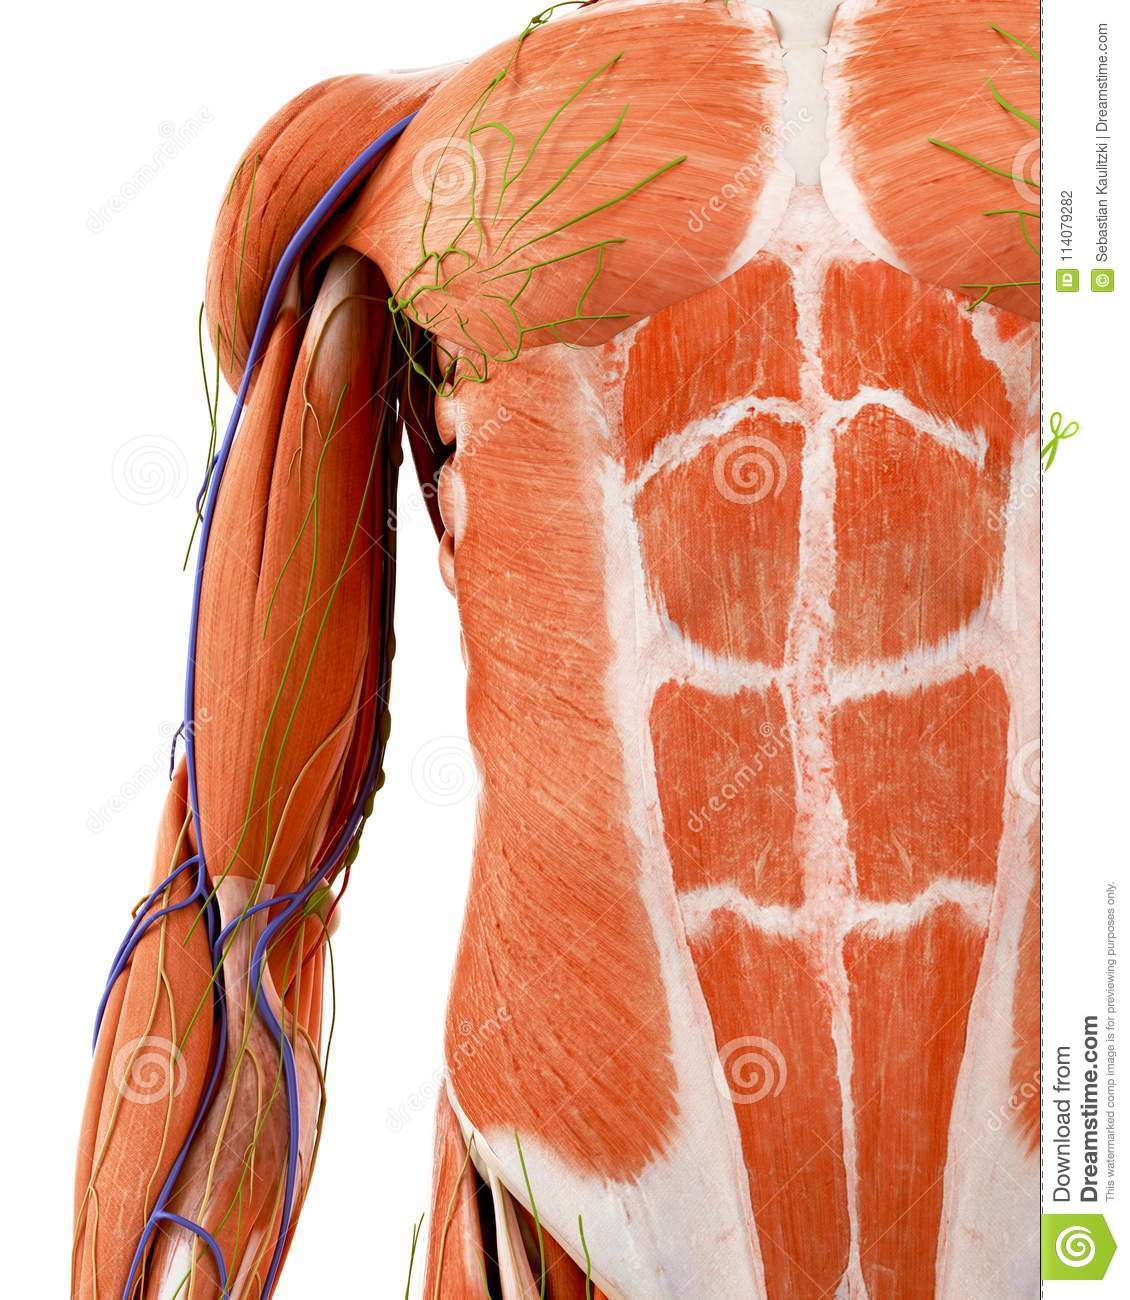 hight resolution of medically accurate illustration of the human upper arm anatomy